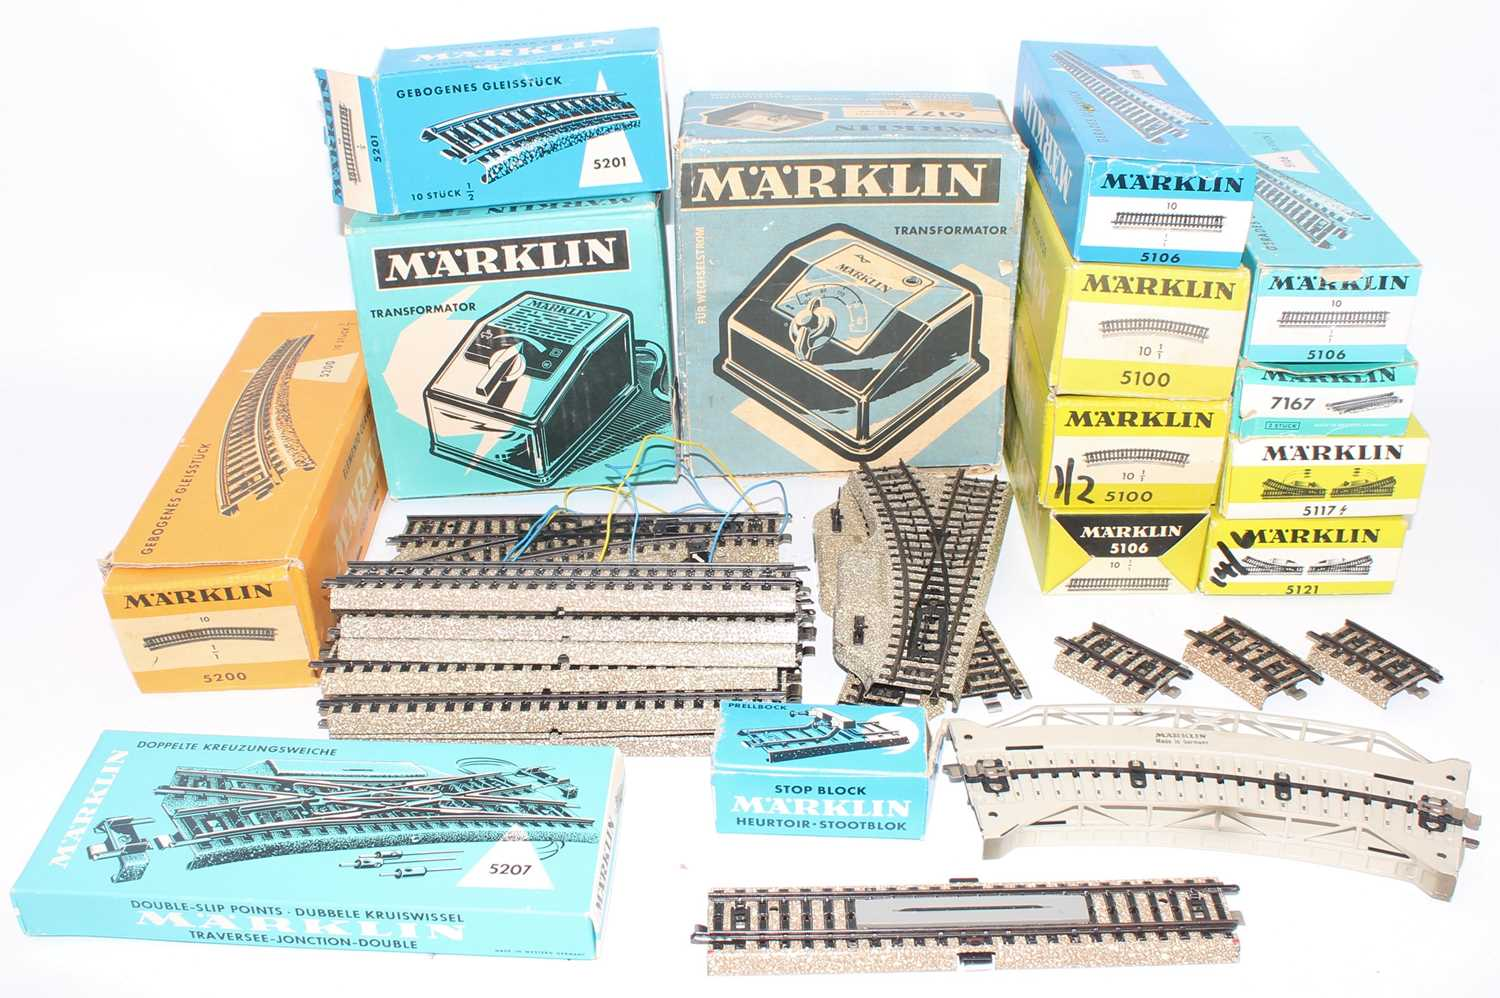 Marklin HO items including 6177 and 6511 transformers with a large quantity of boxed and unboxed